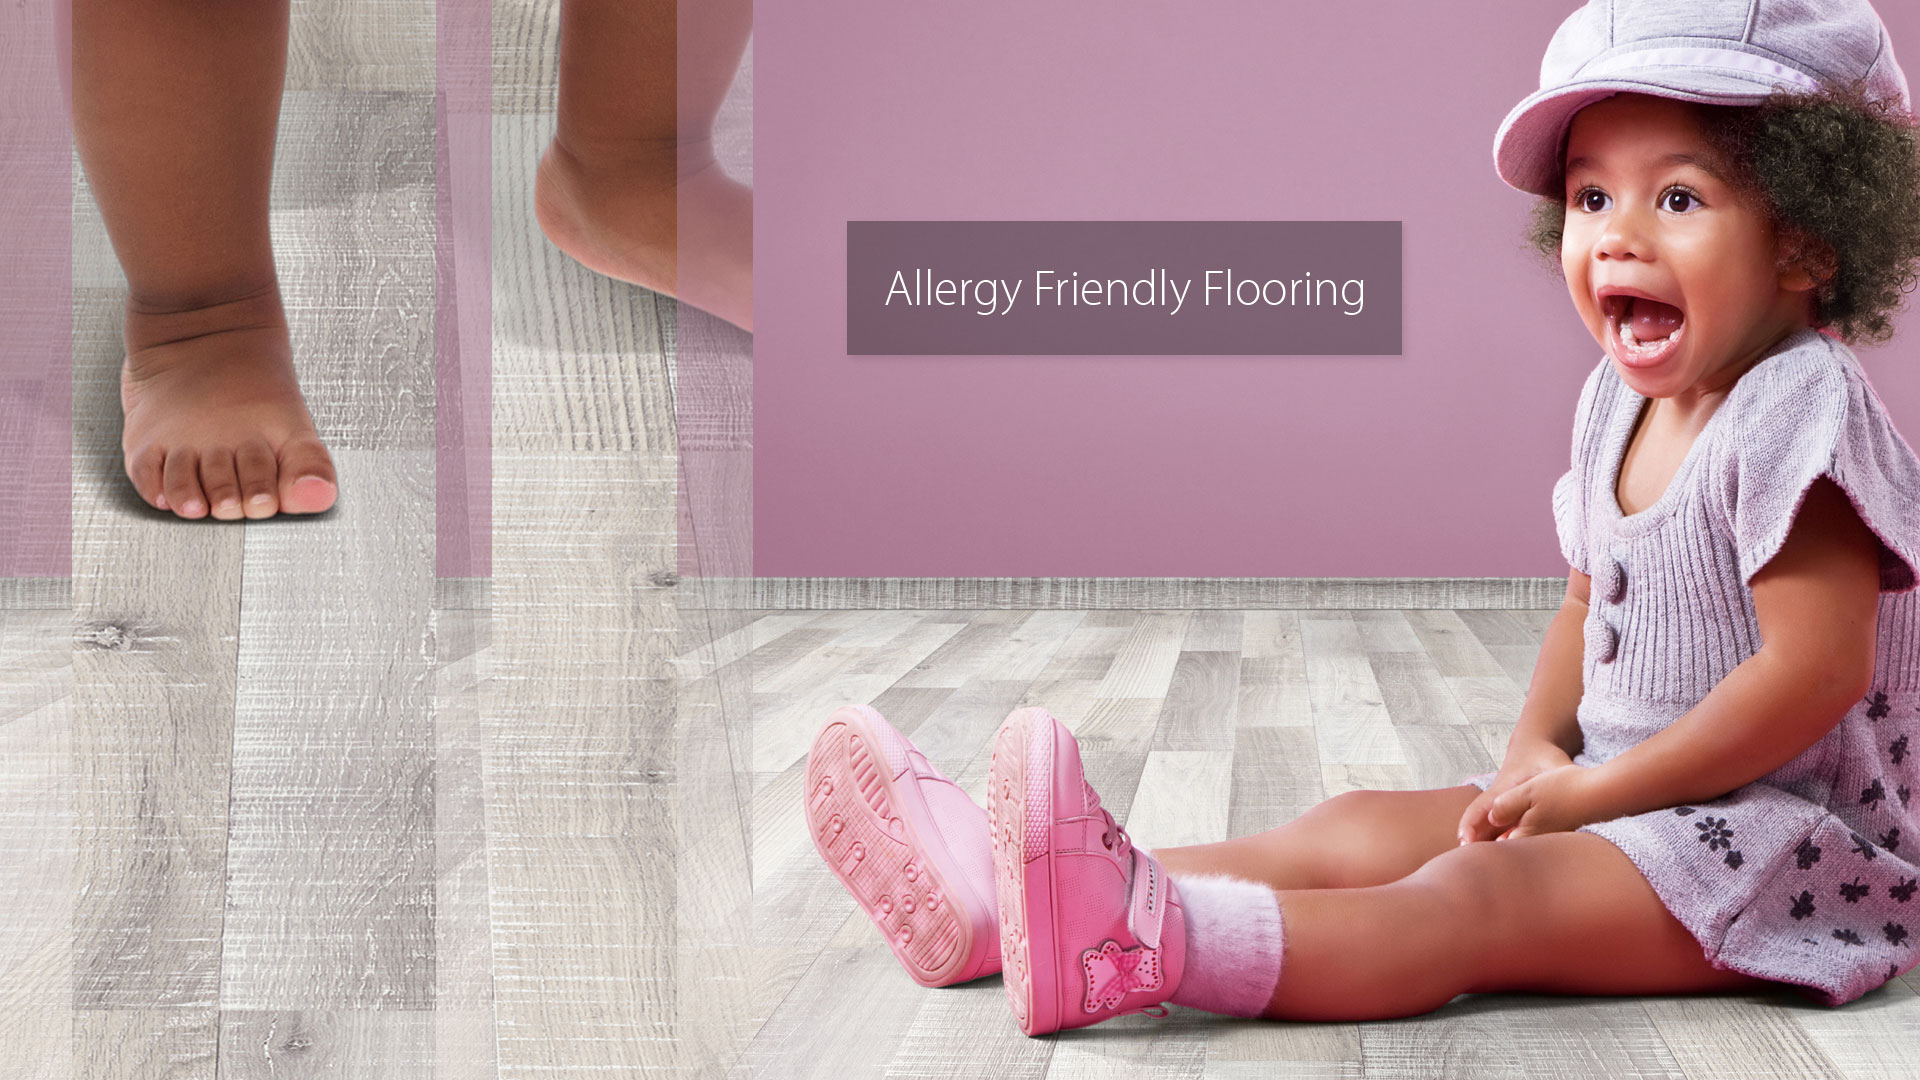 Allergy Friendly Flooring